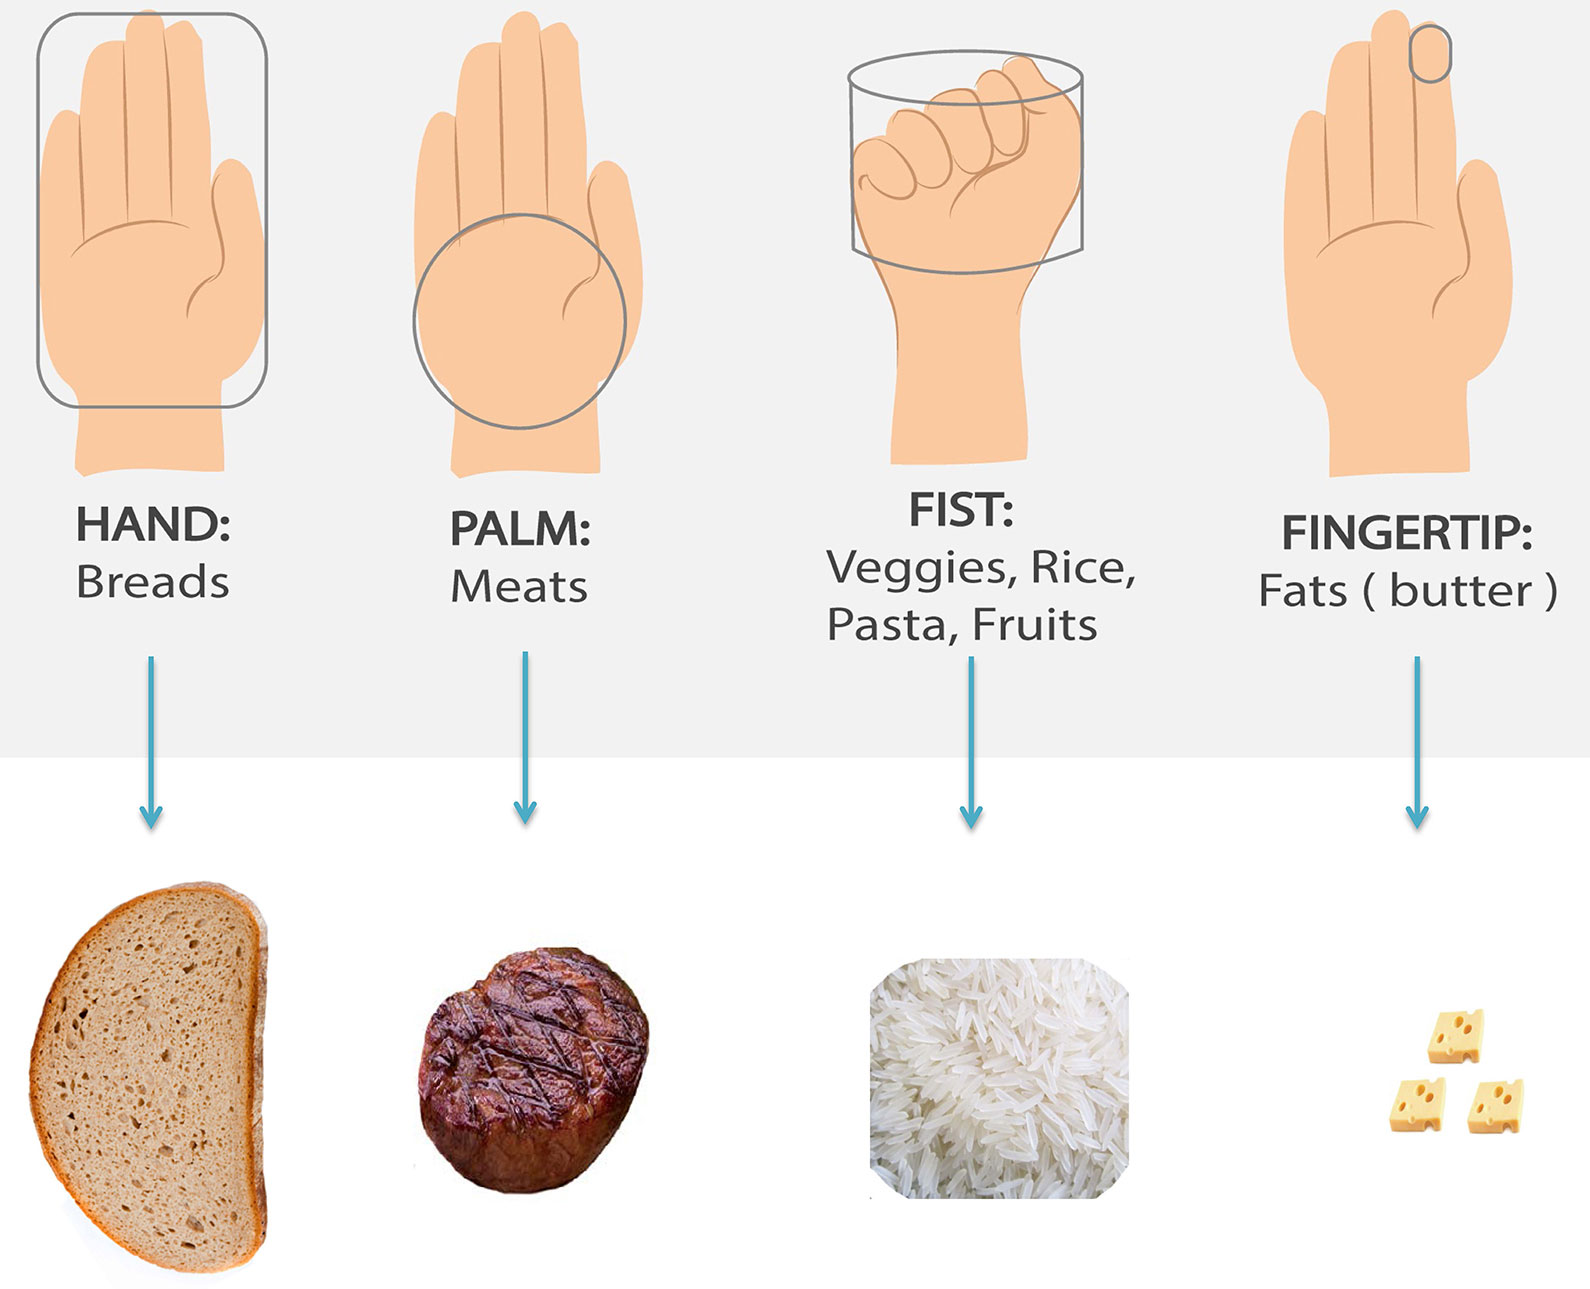 Portion sizes in relation to an adult hand